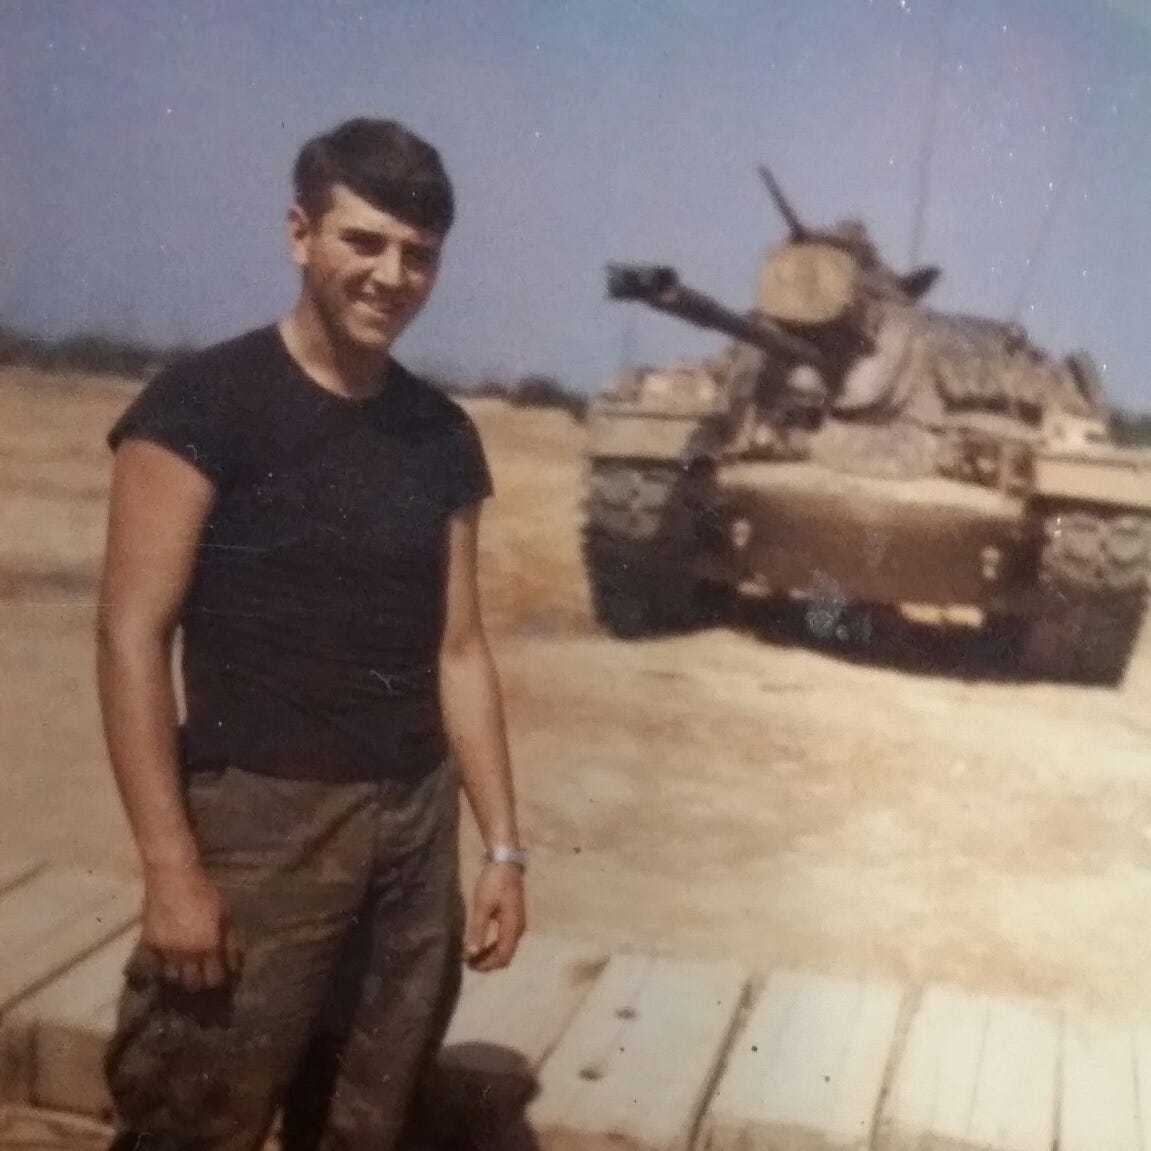 Veteran's Story: Wendling saw a lot of combat in Vietnam